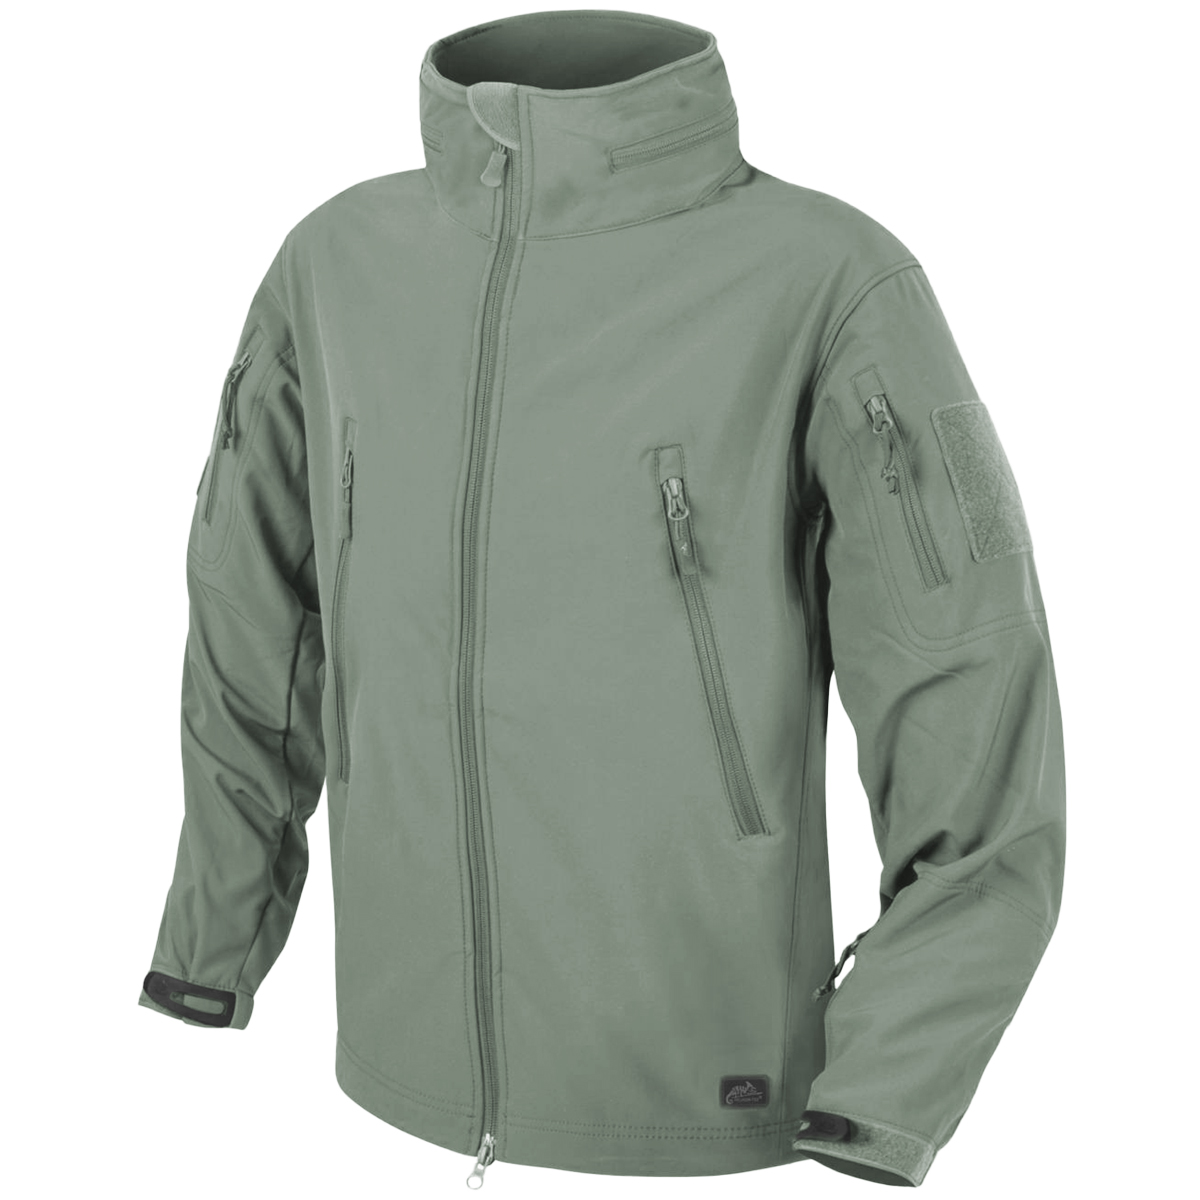 HELIKON GUNFIGHTER TACTICAL WINDPROOF SOFT SHELL MENS HOODED JACKET FOLIAGE GREY